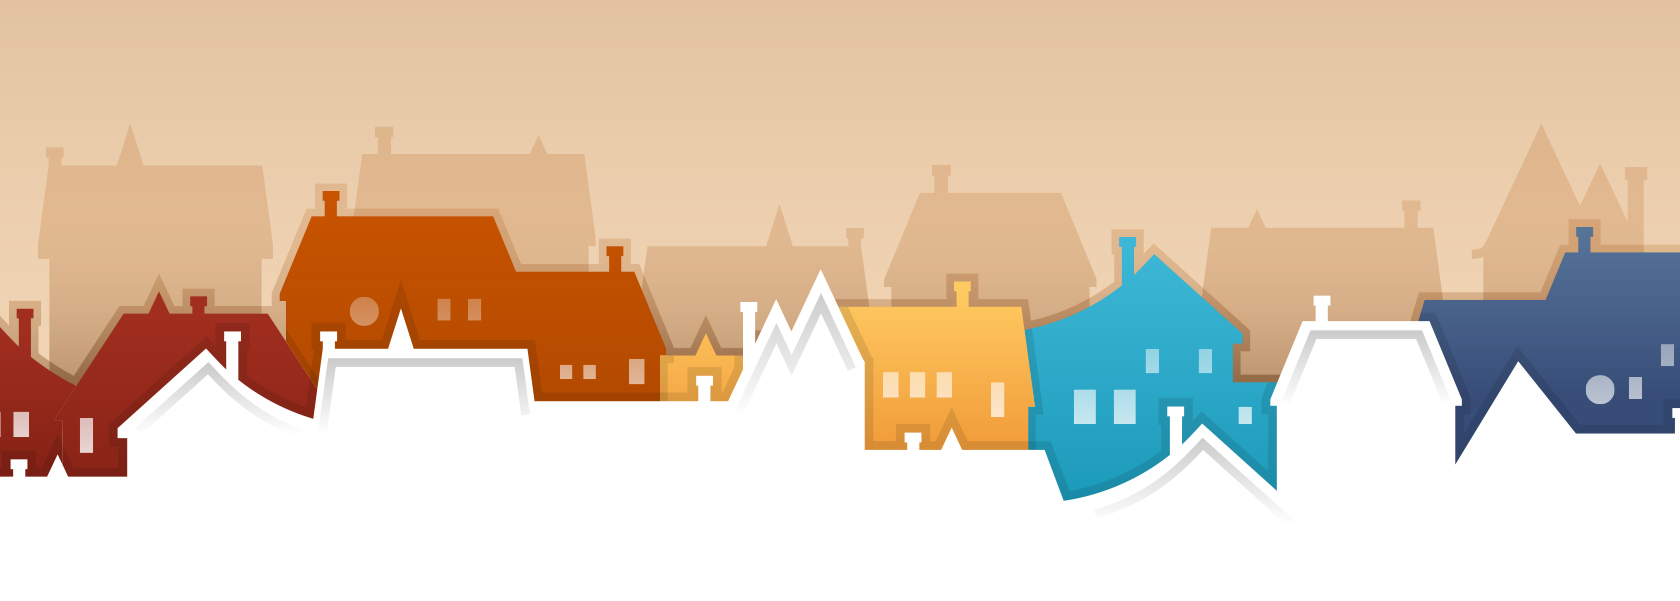 Cartoon image of different colored houses.